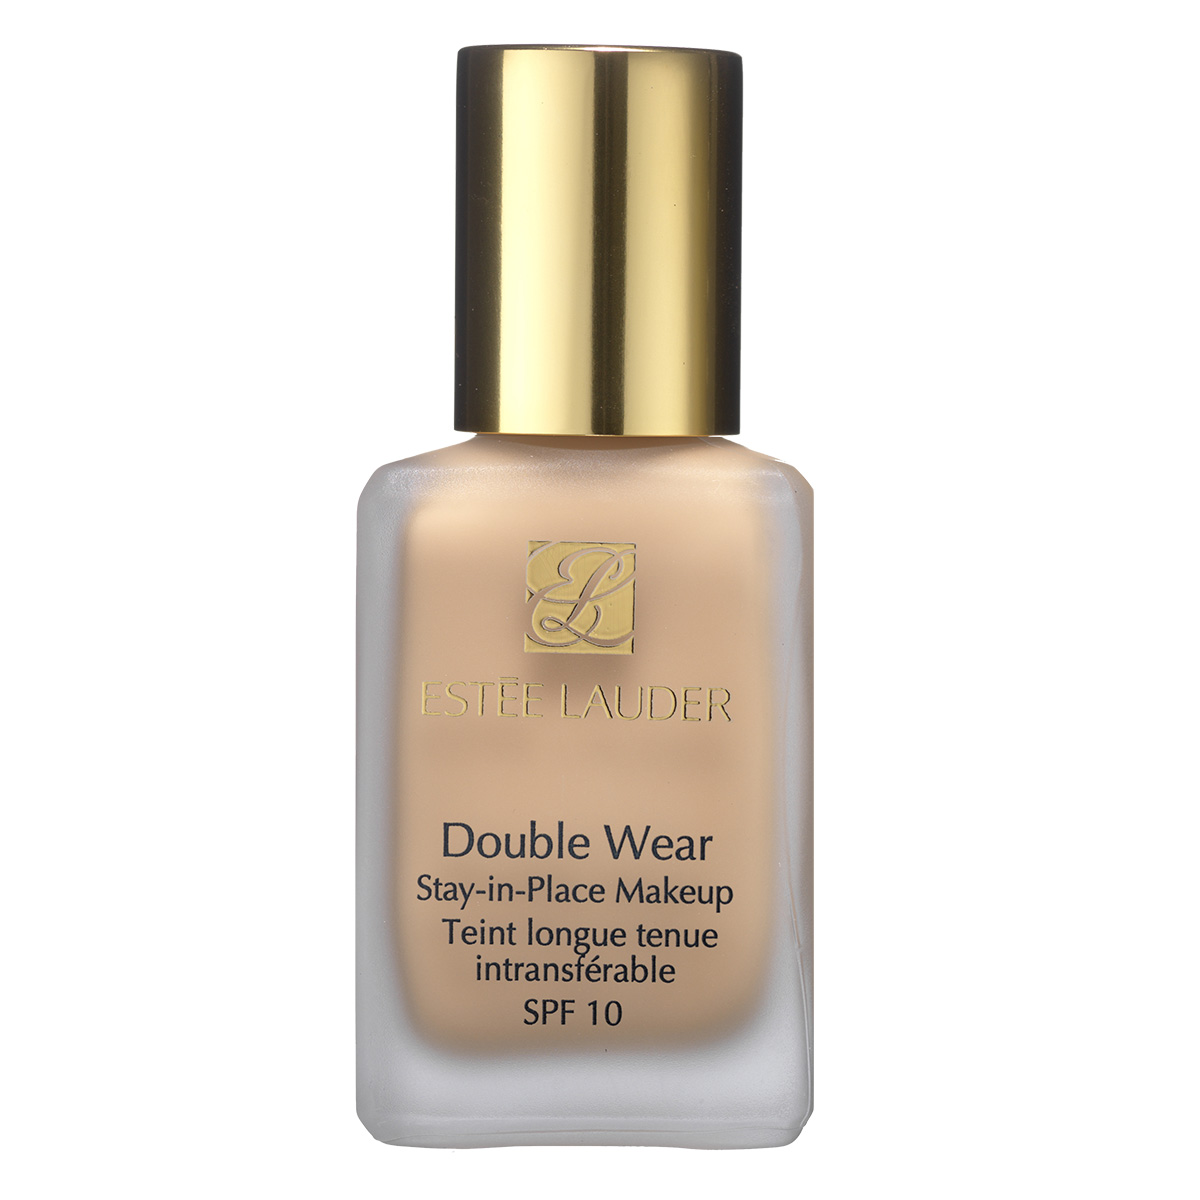 Estée Lauder Double Wear Stay-in-place makeup SPF 10 - 30 ml